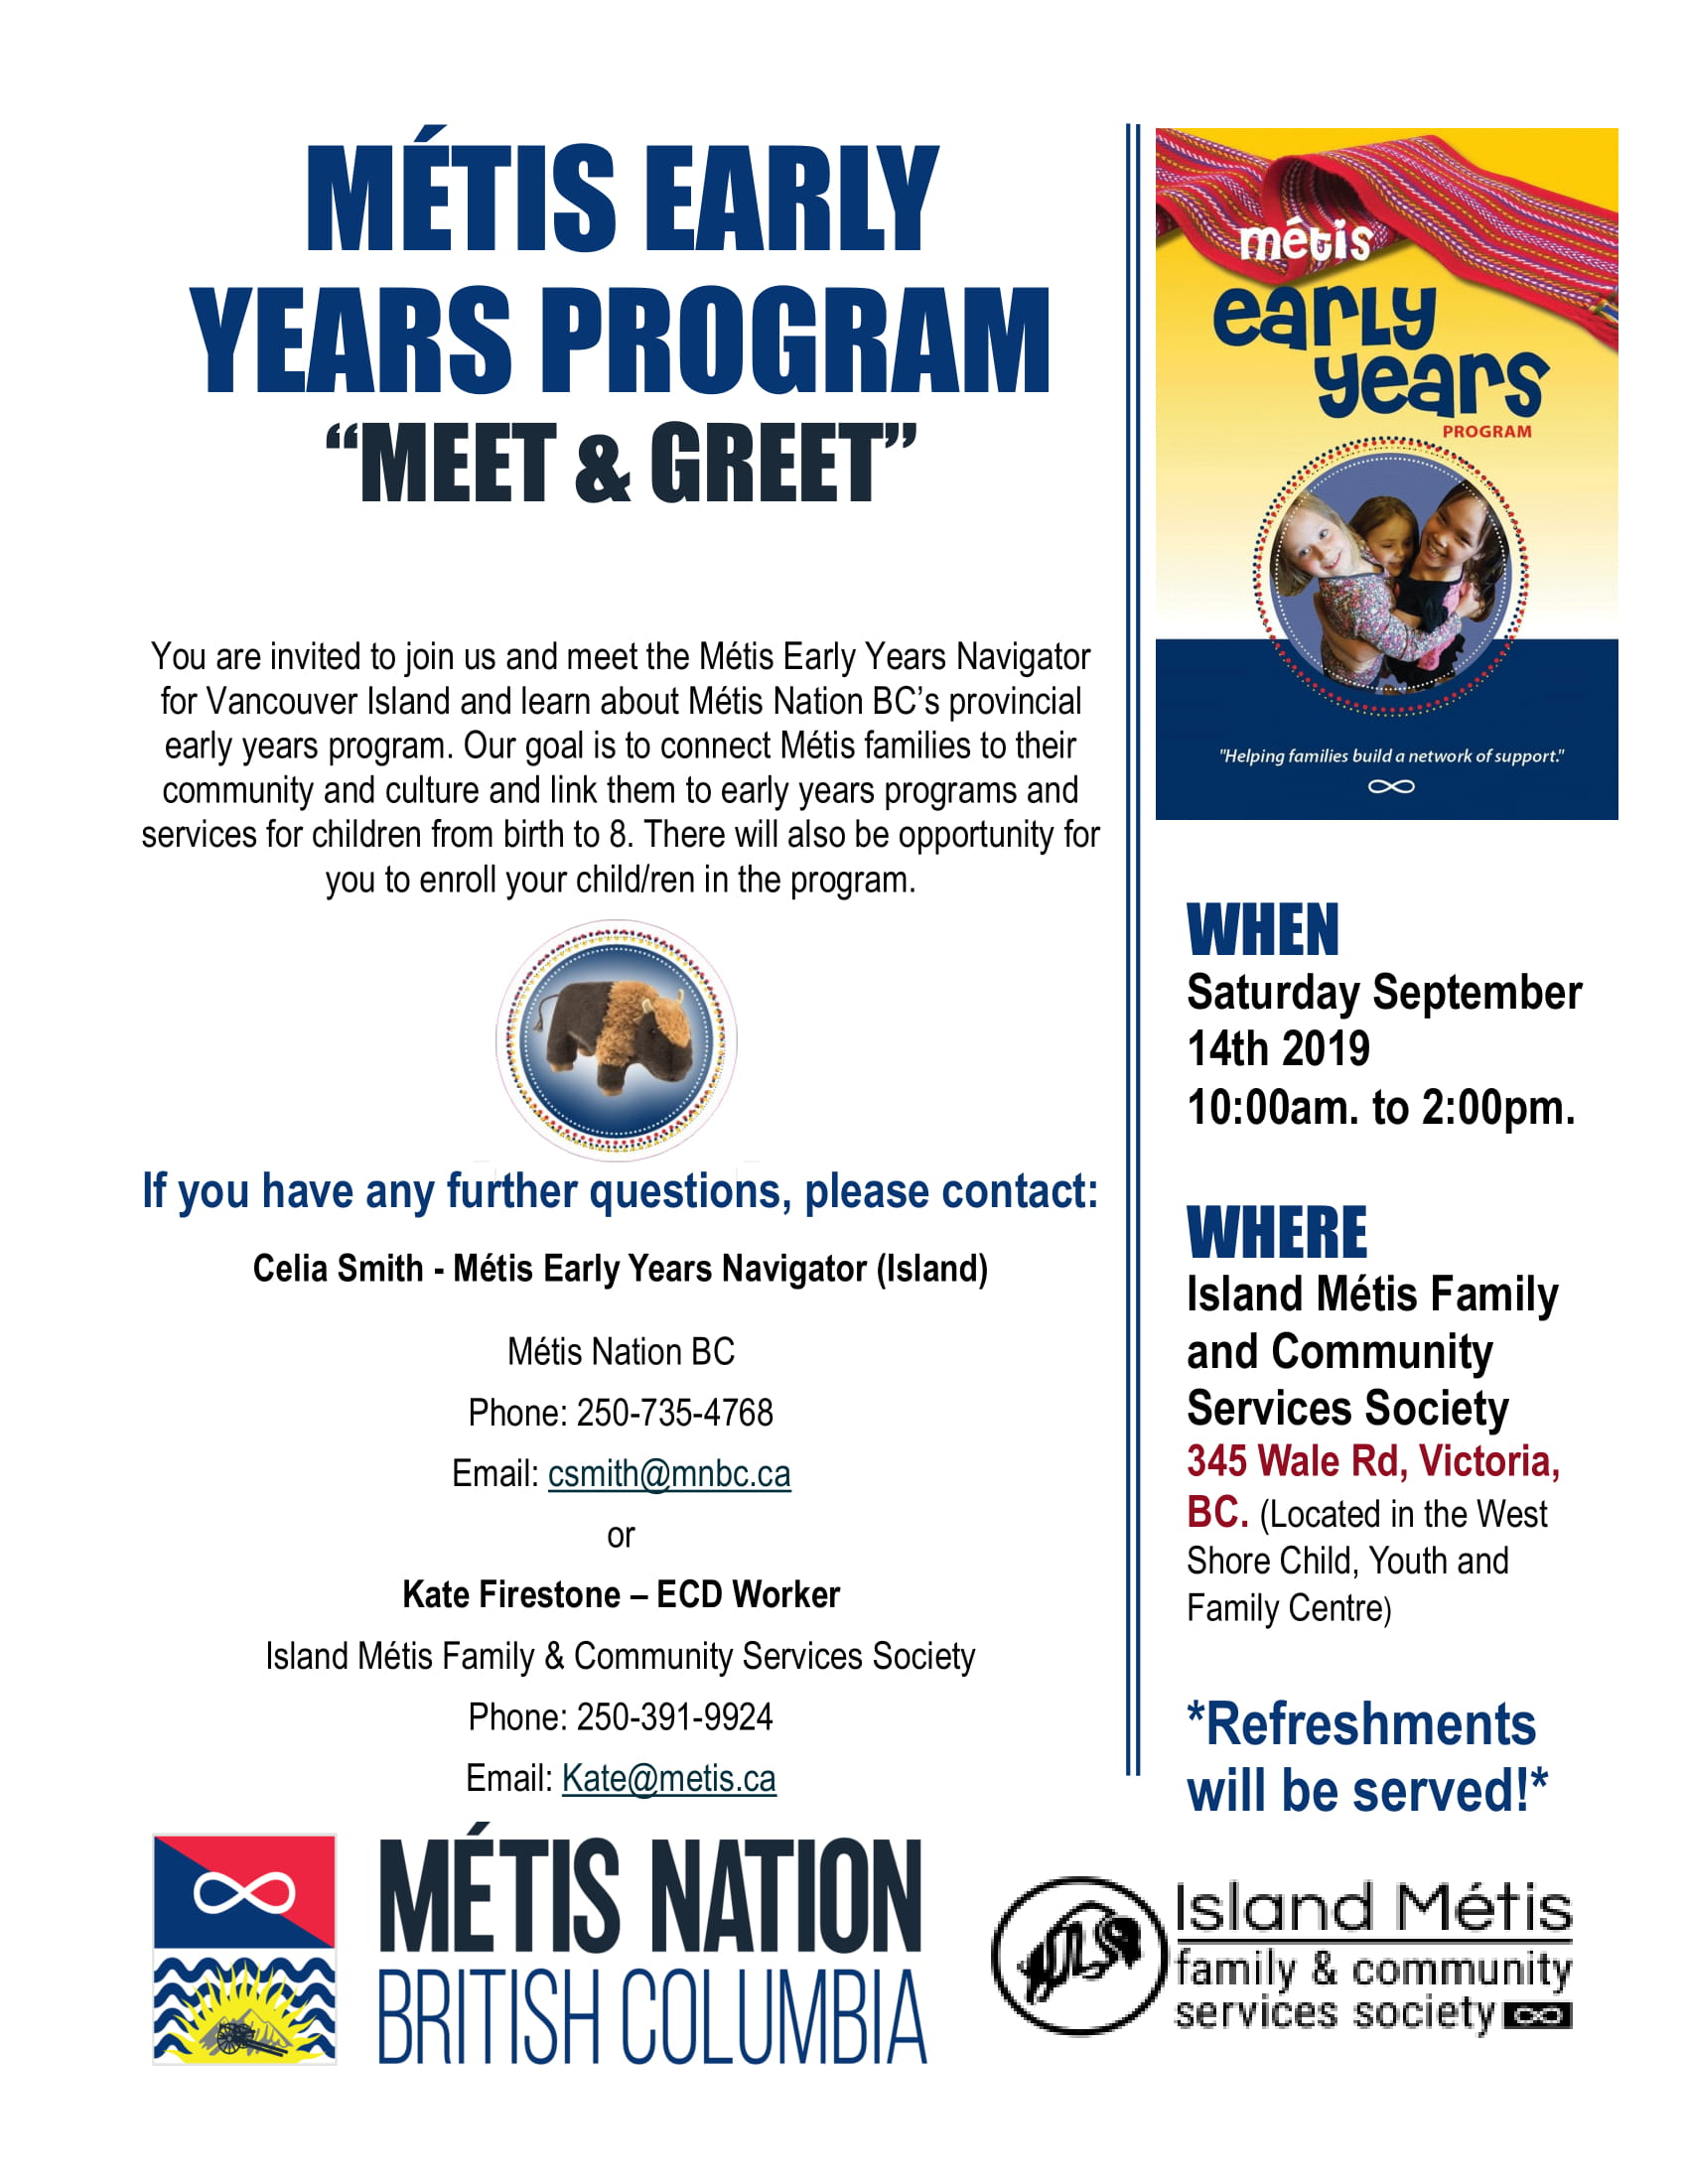 Metis Early Years Celebration Sept 14